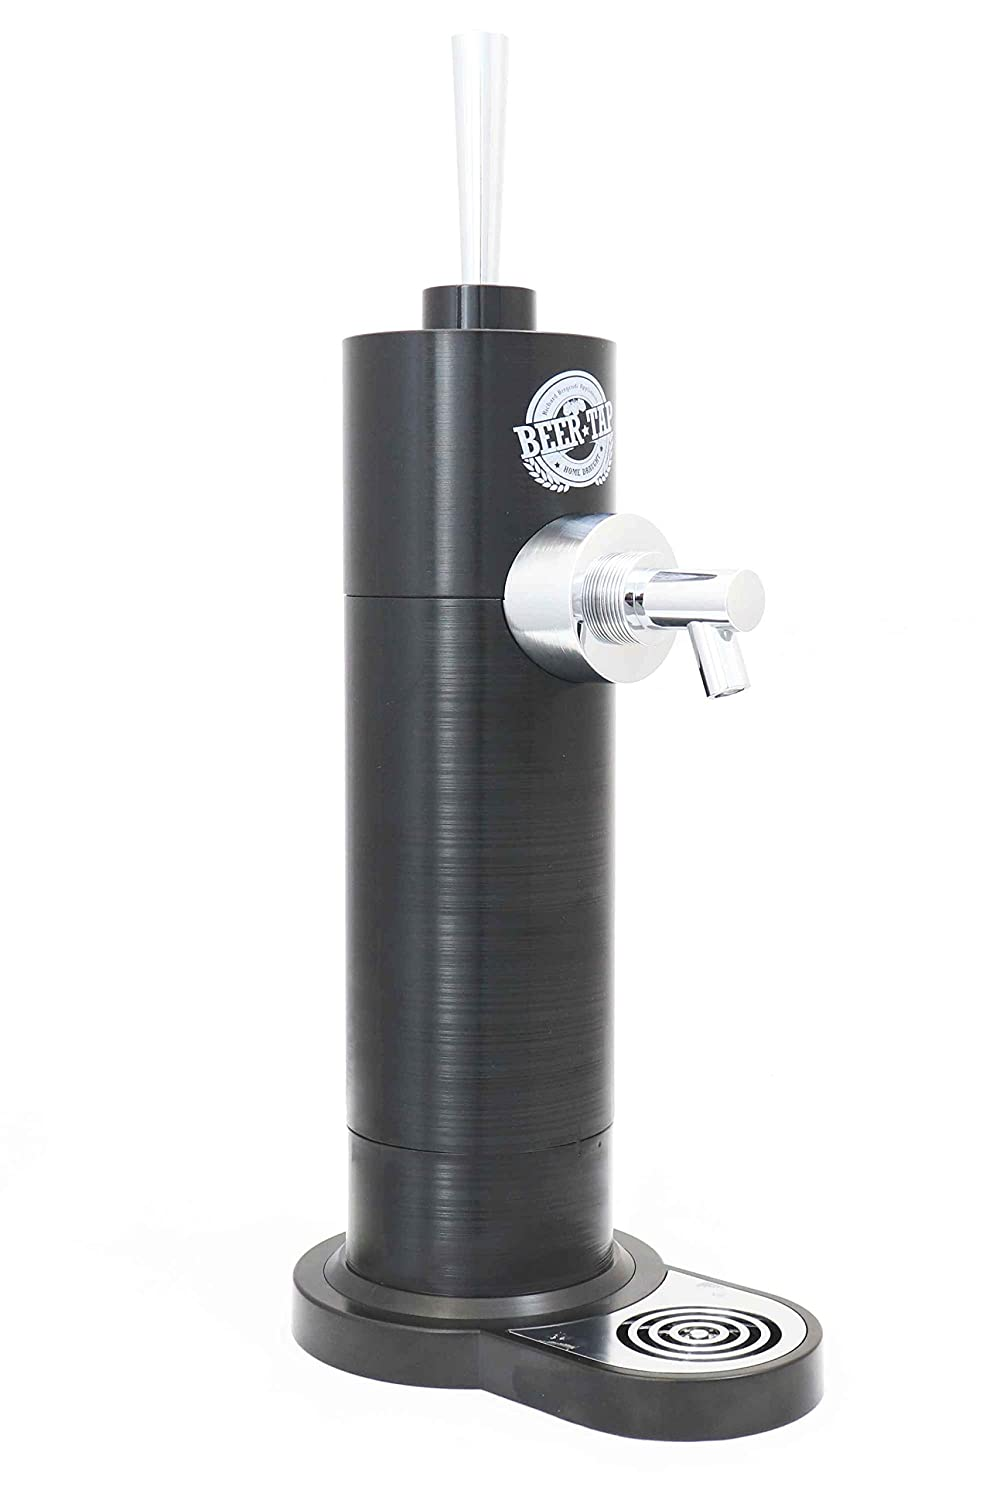 Beer Tap by Richard Bergendi Black Edition, The Home Draught Beer Pump - Home Beer Pump/Beer Tap BENEO